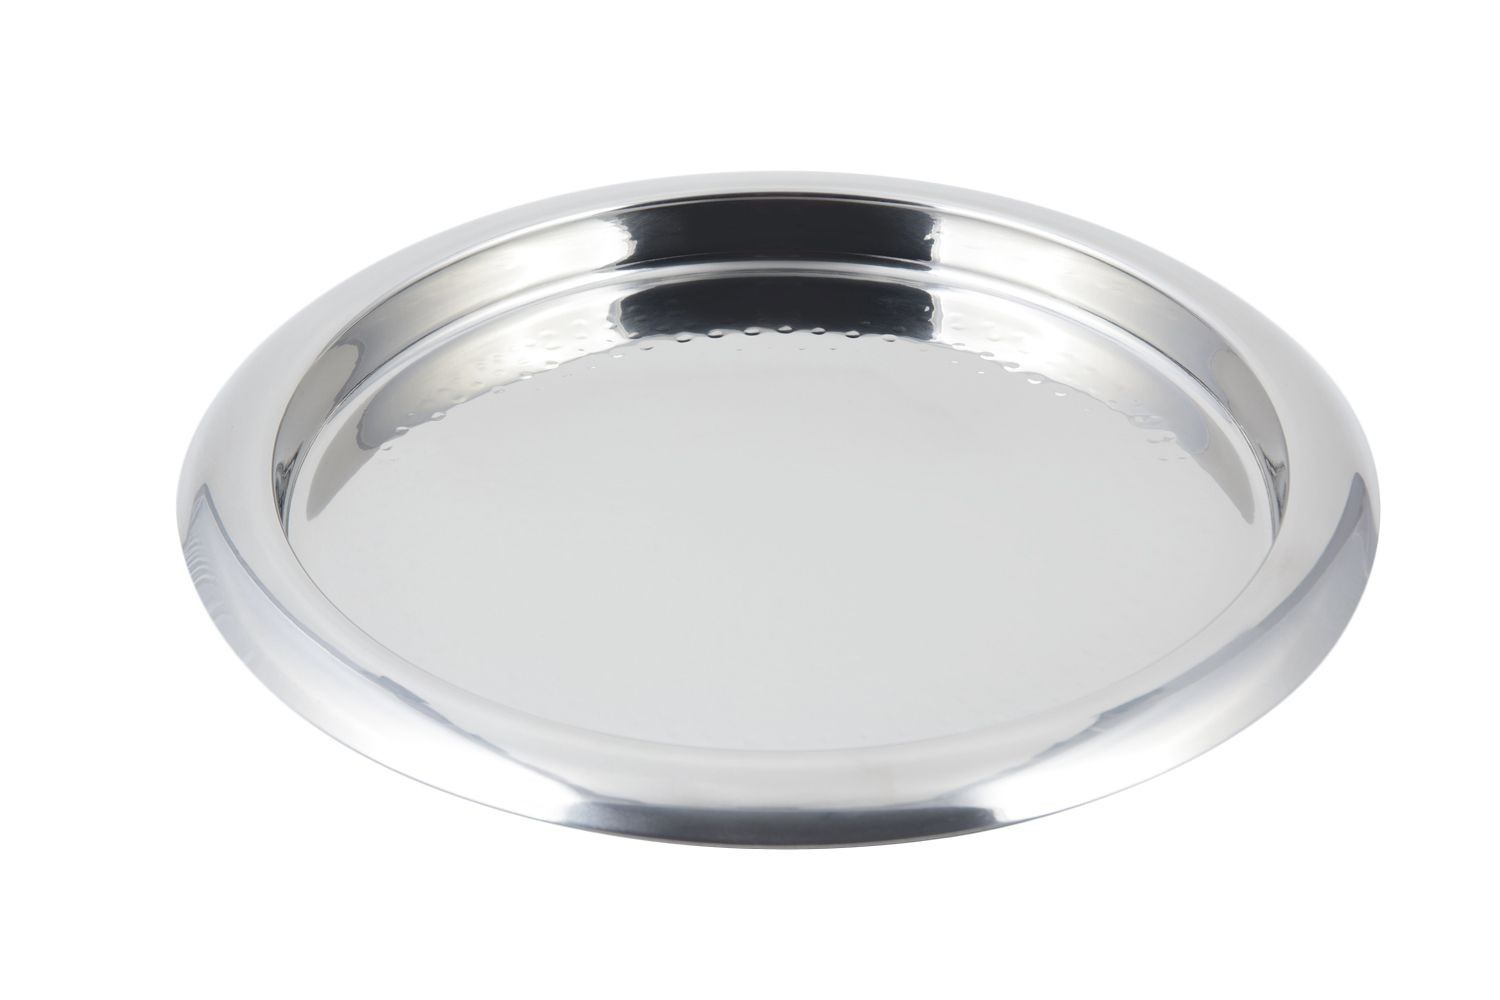 "Bon Chef 61277  Stainless Steel Round Hammered Tray, 13 1/4"" Dia."